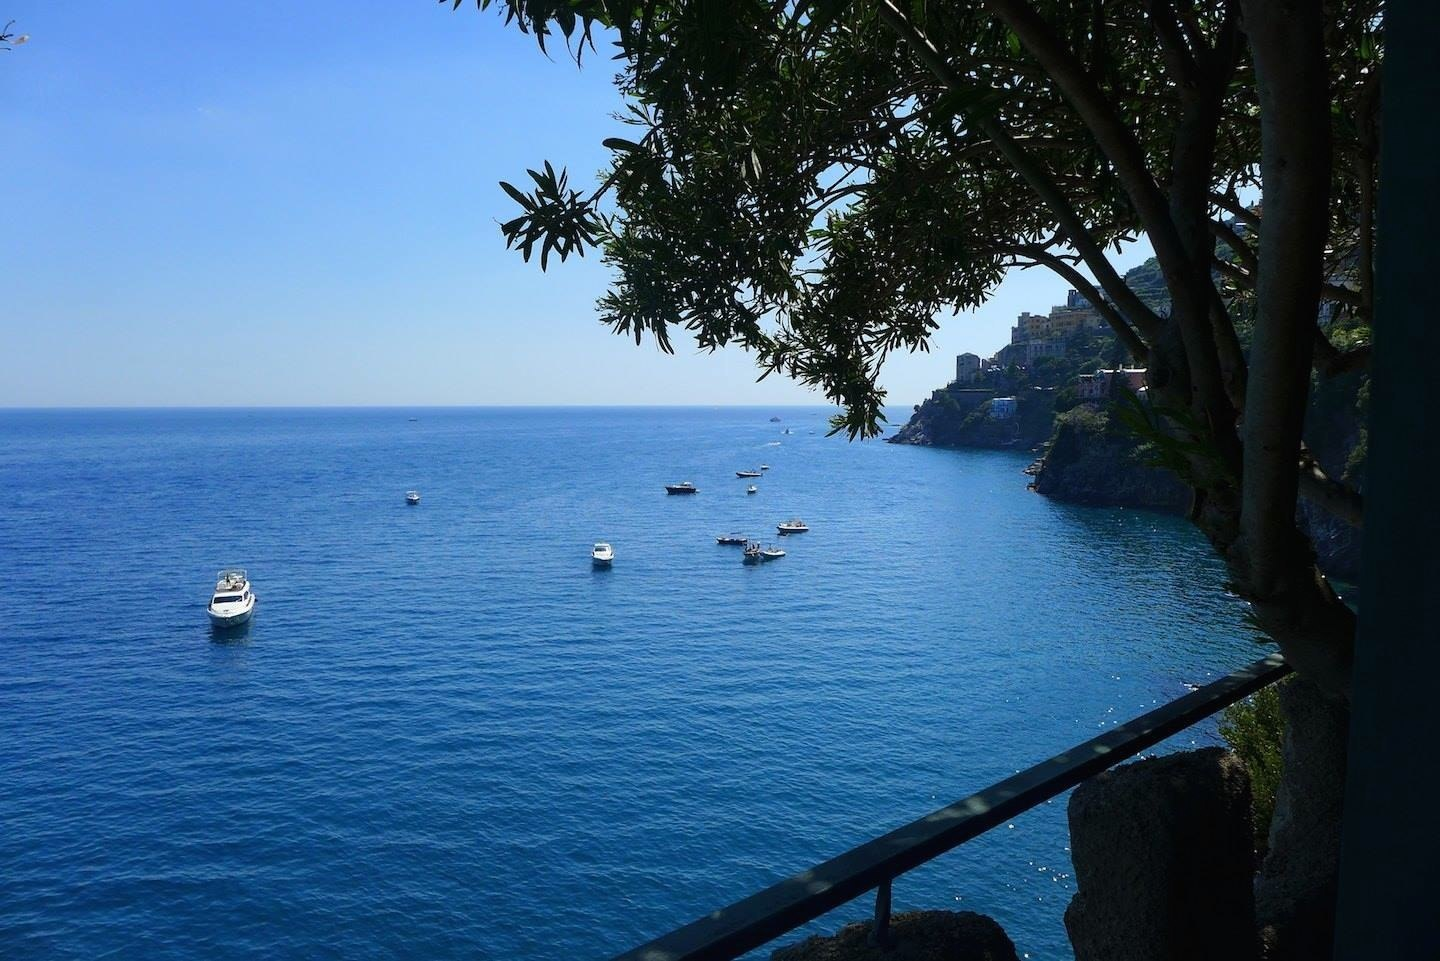 Day trip in Amalfi